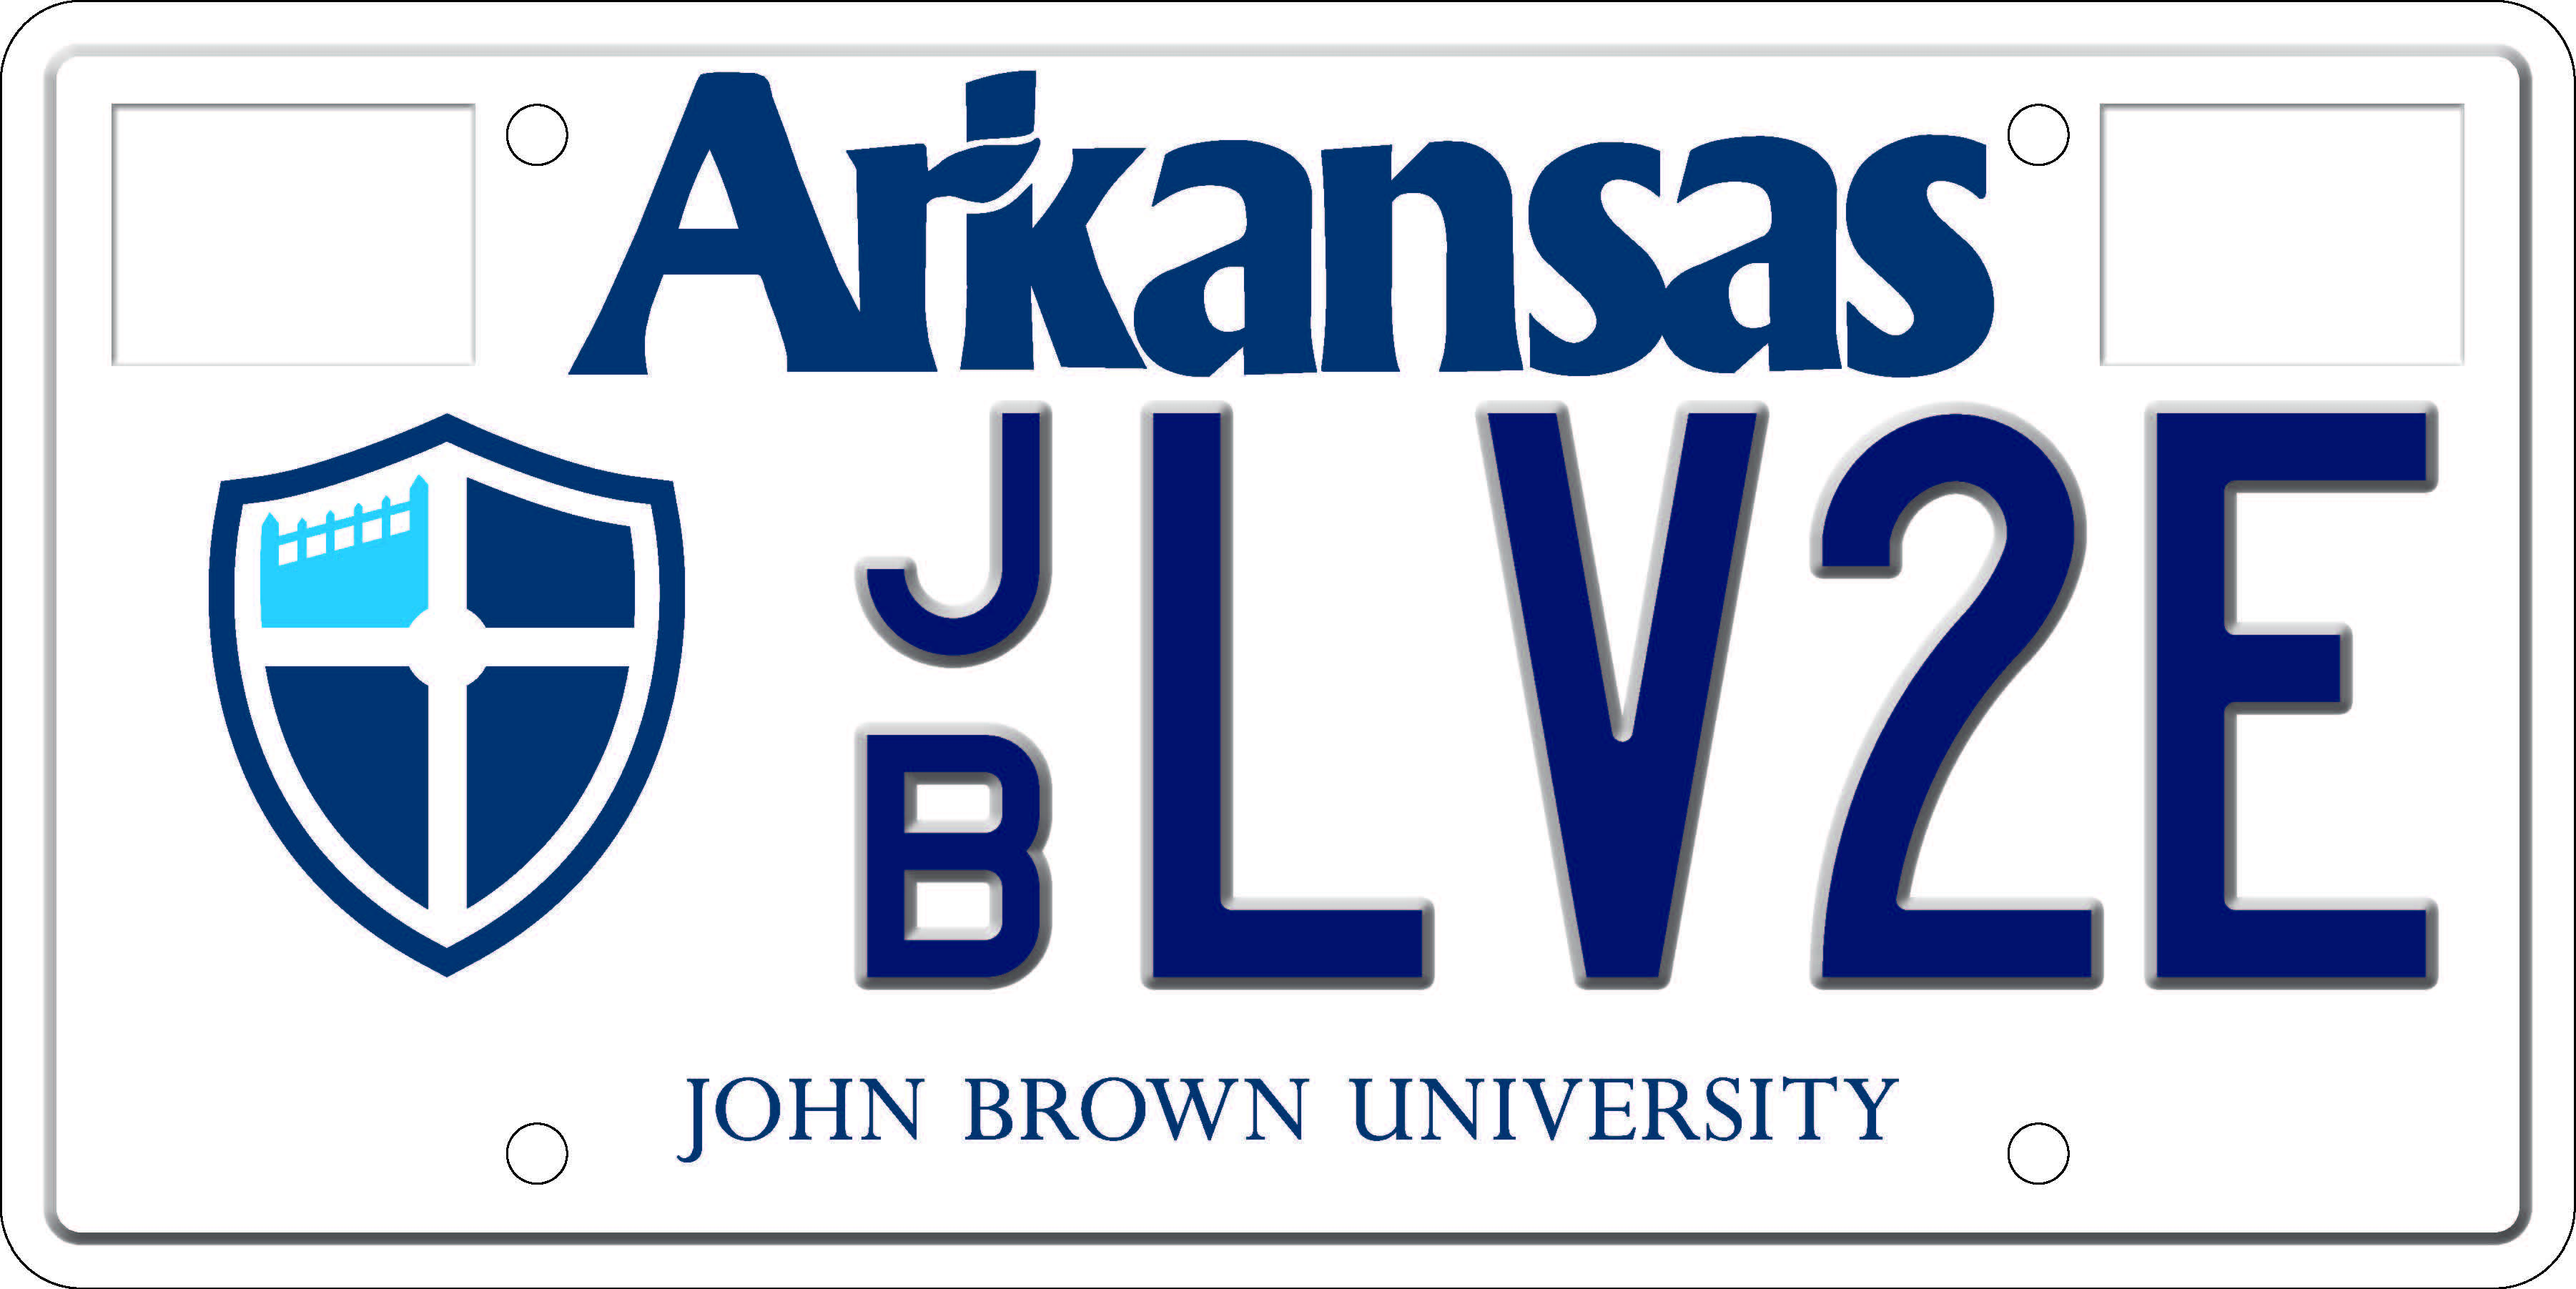 John Brown University License plate